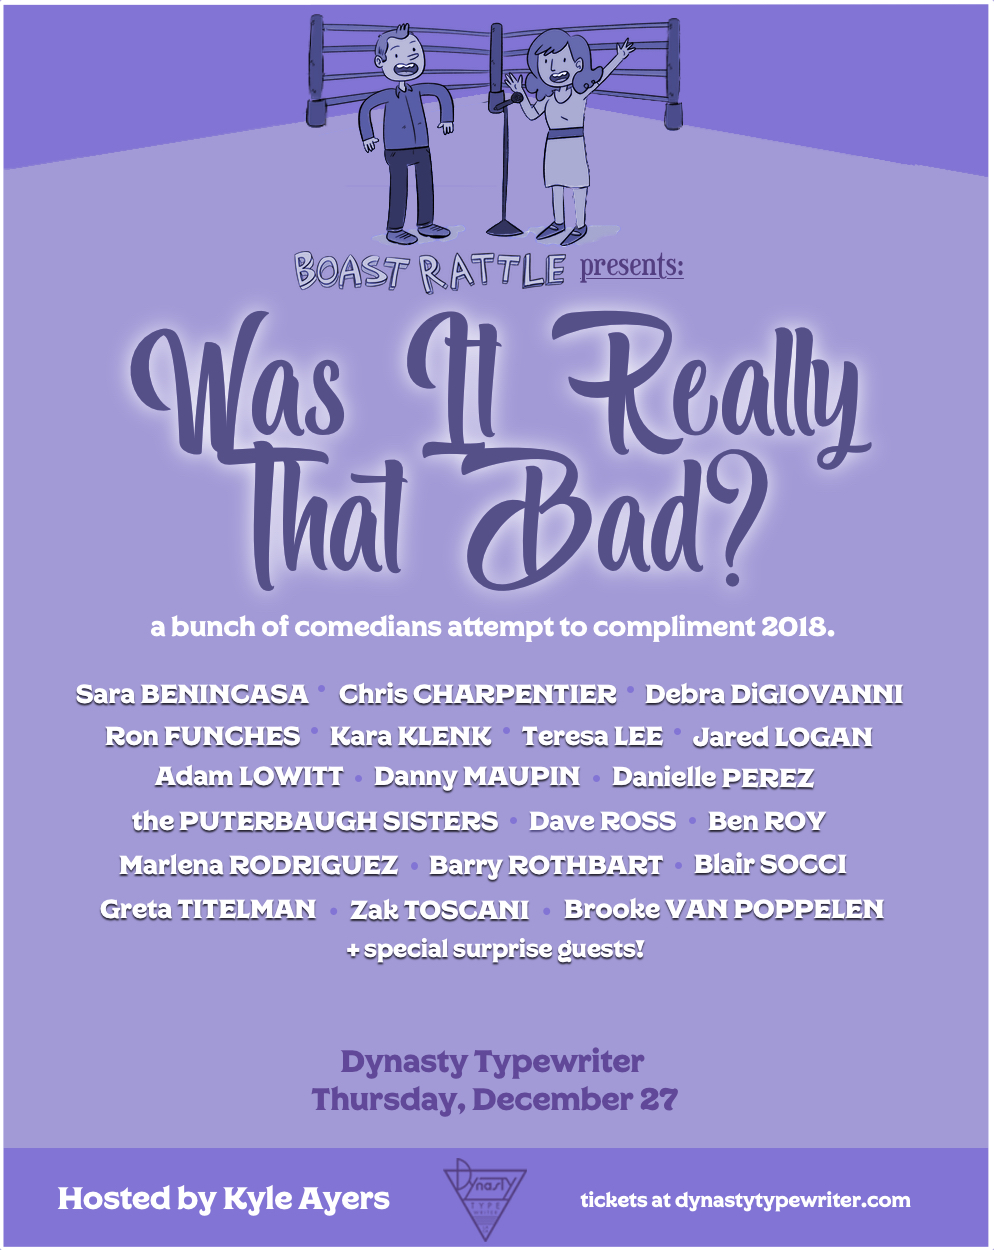 Was It Really That Bad Poster Largest.jpg